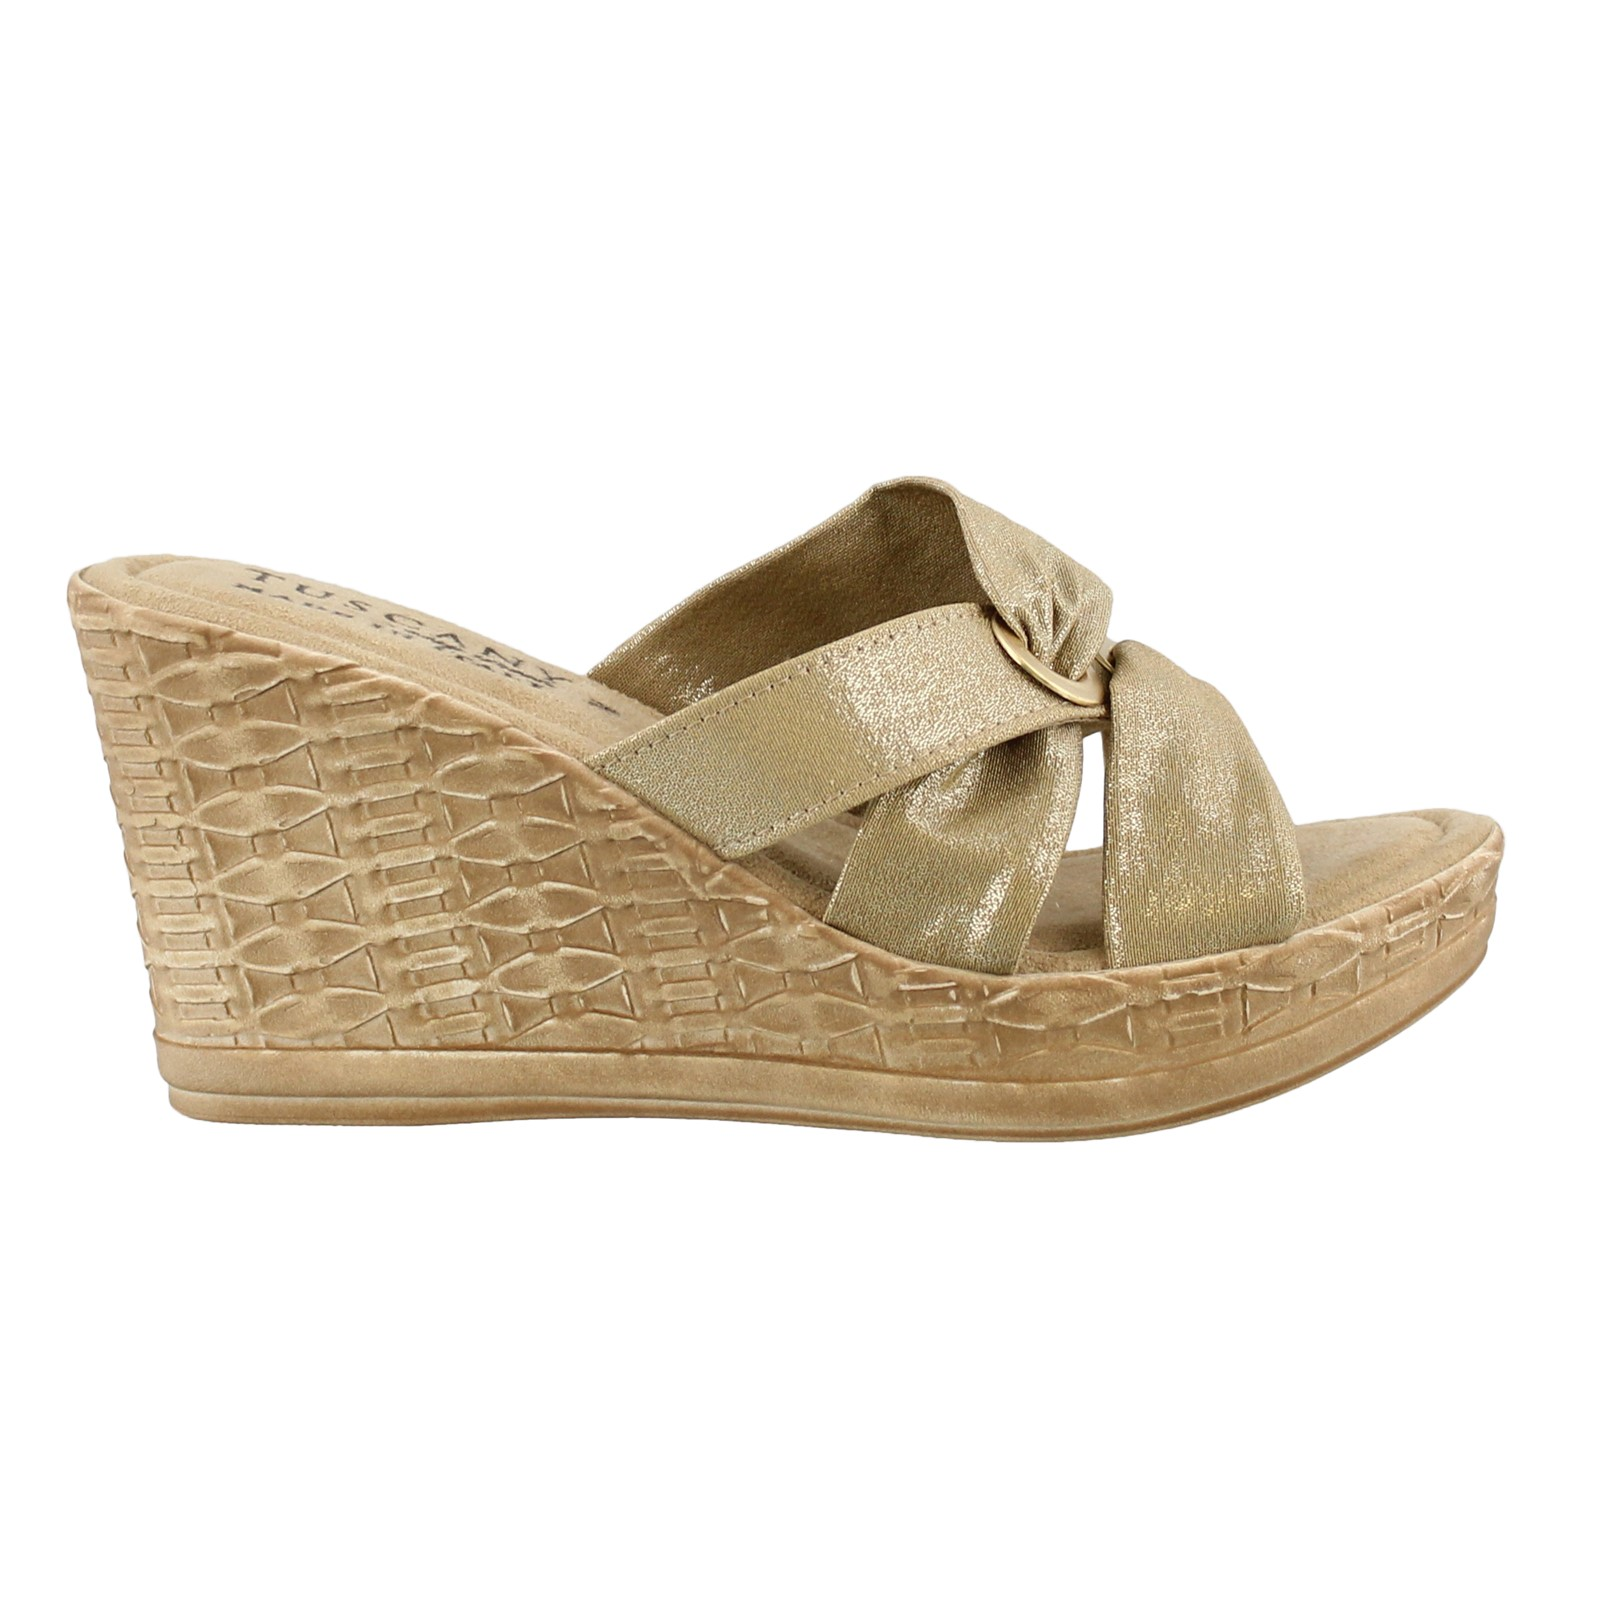 Women's Easy Street, Solaro Wedge Sandal